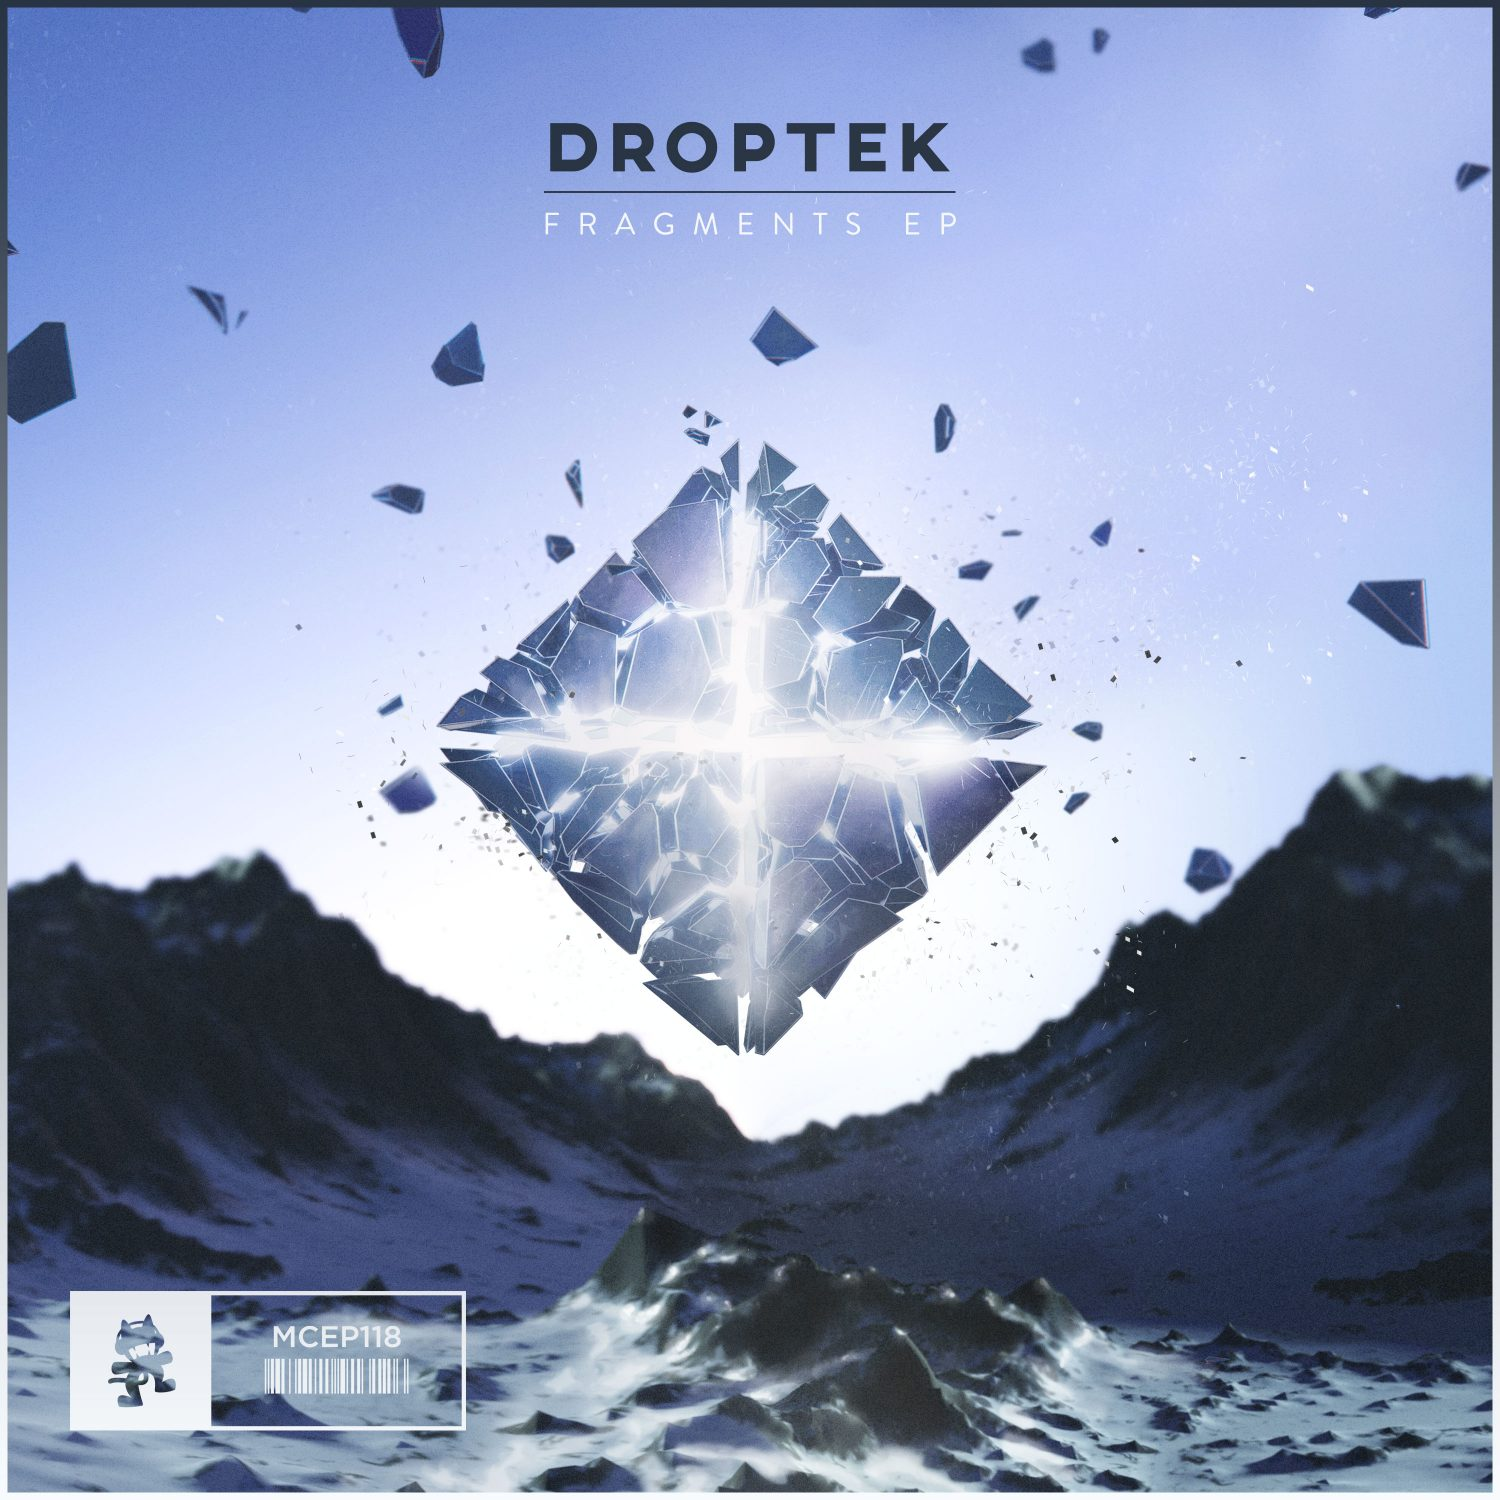 droptek-fragments-interview-ep